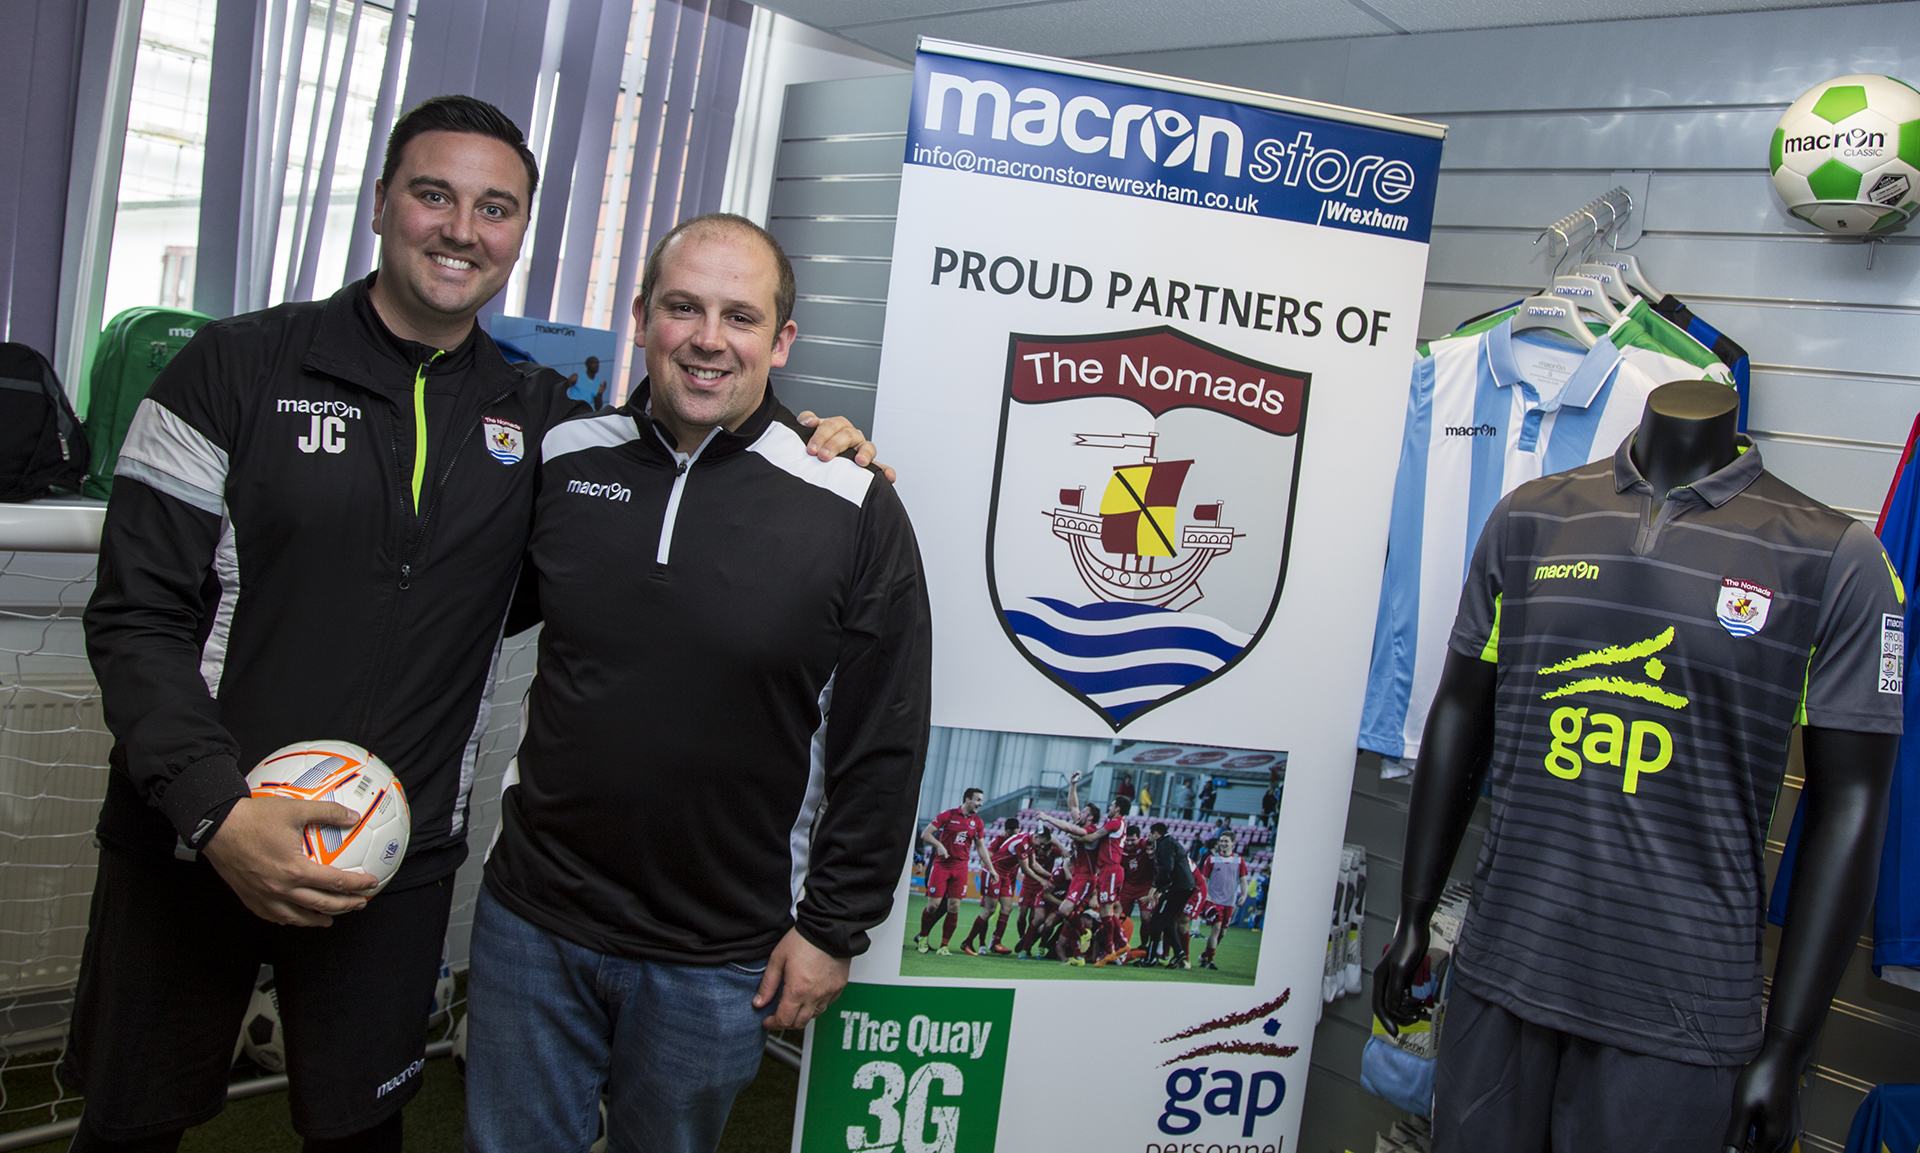 Nomads sign two year deal with Macron